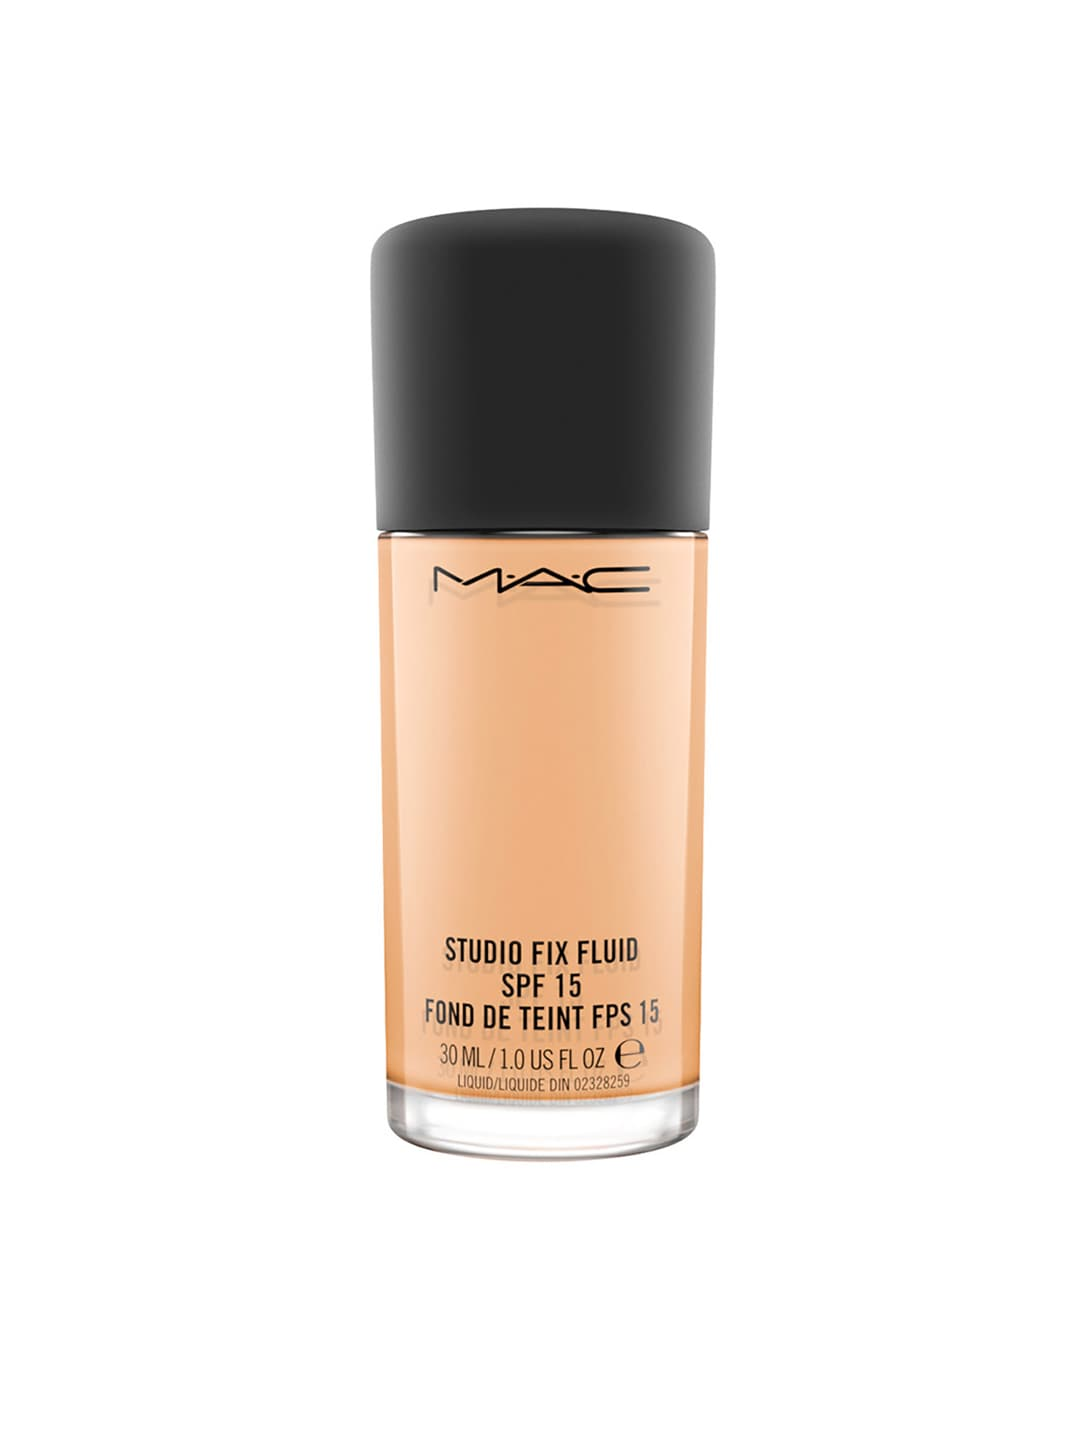 M.A.C NC41 Studio Fix Fluid SPF 15 image